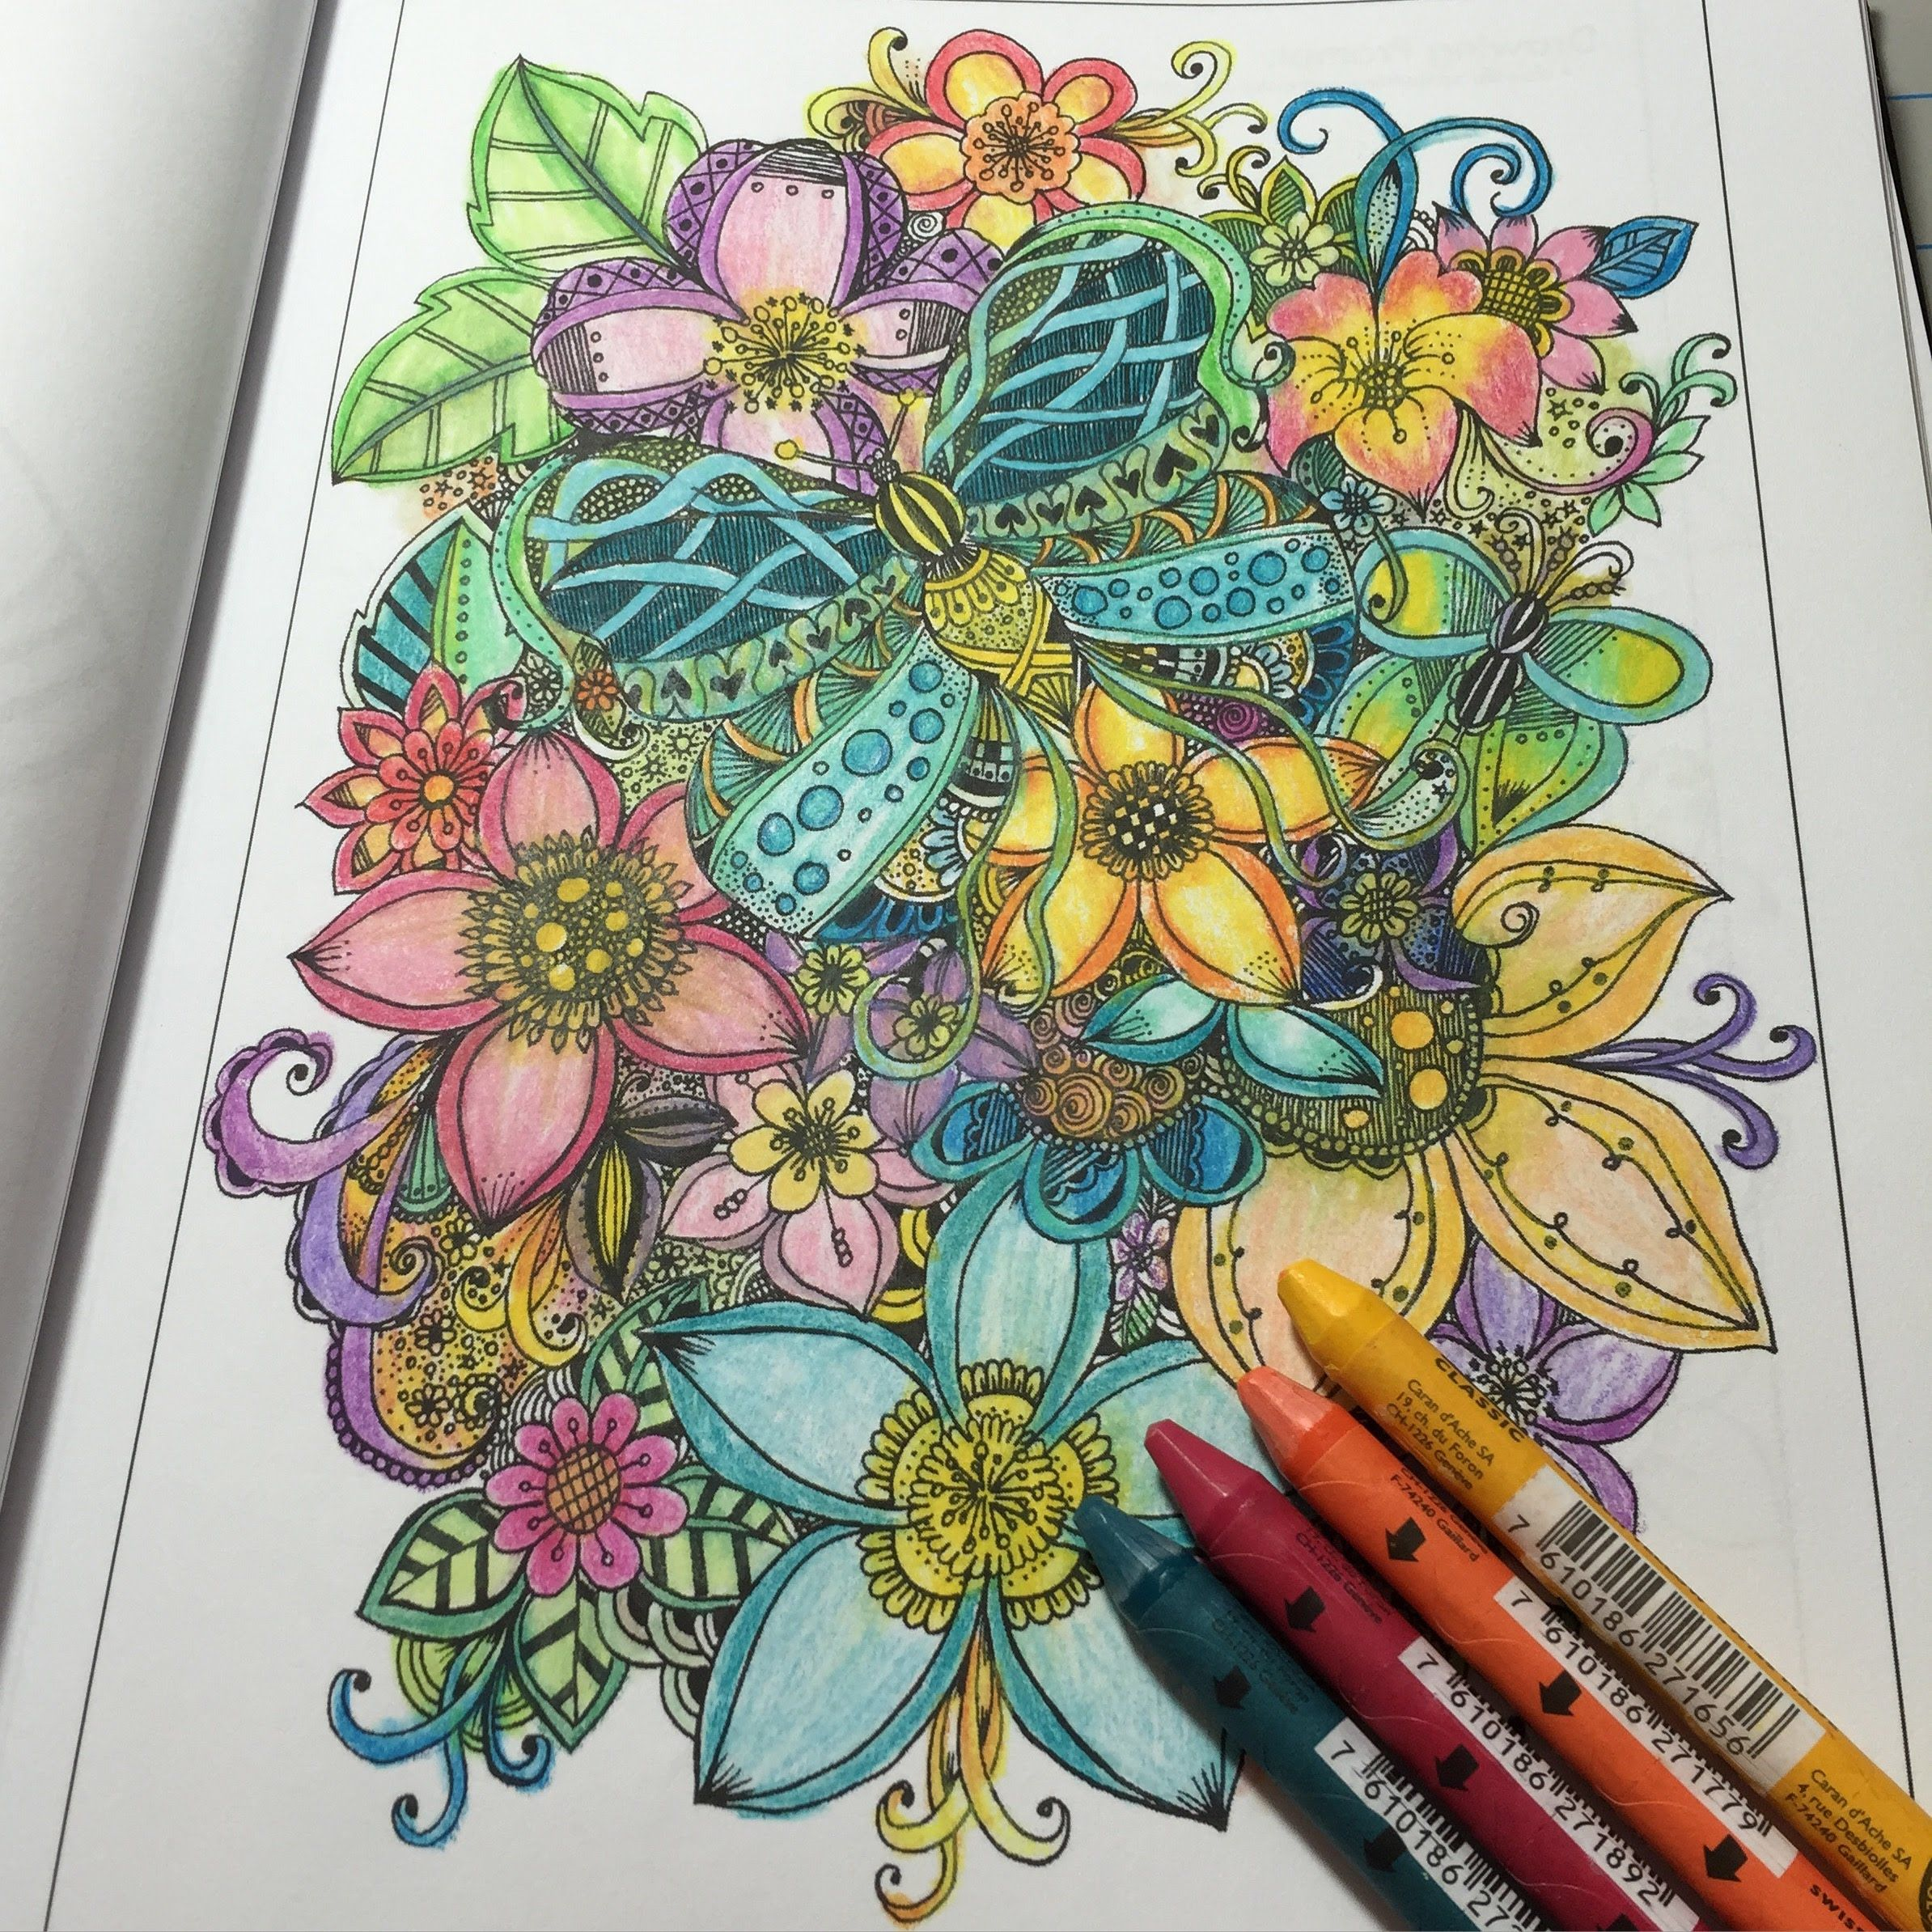 coloring in my coloring book: color supplies used are listed in